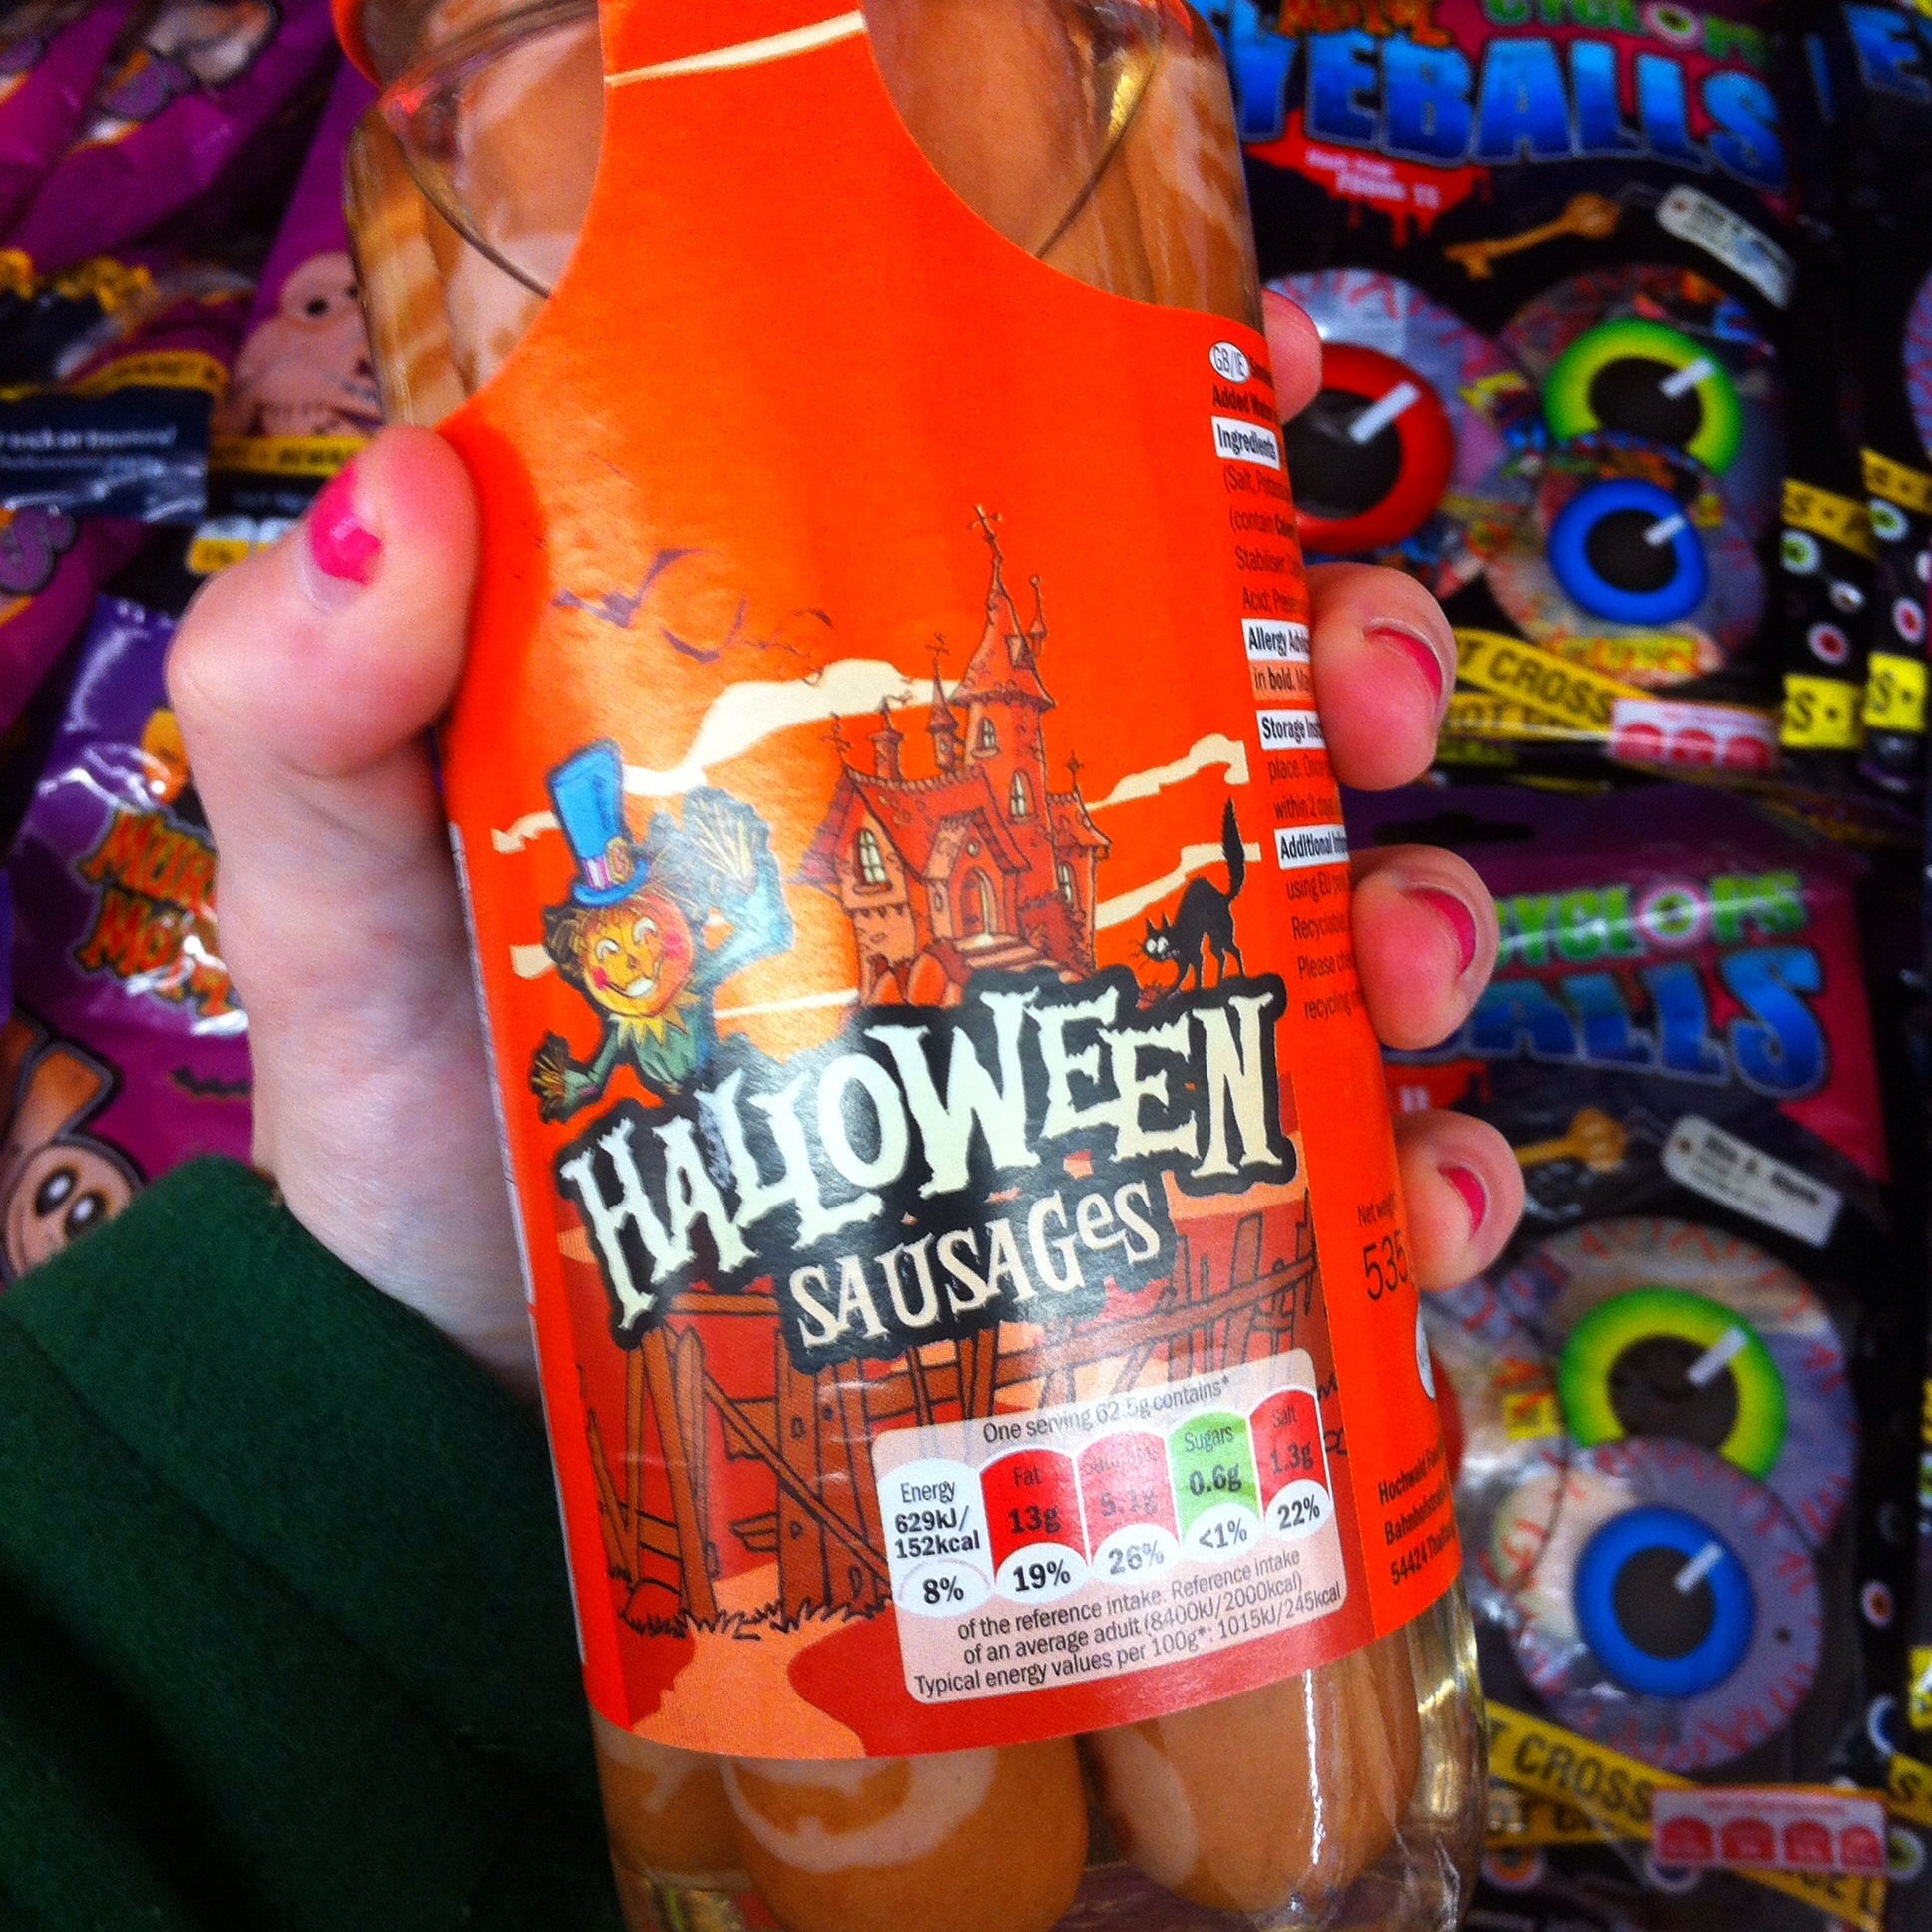 Costumi Halloween 2019 Lidl.Halloween Fun At Lidl You Can Win 50 Each Day Until The 31st The